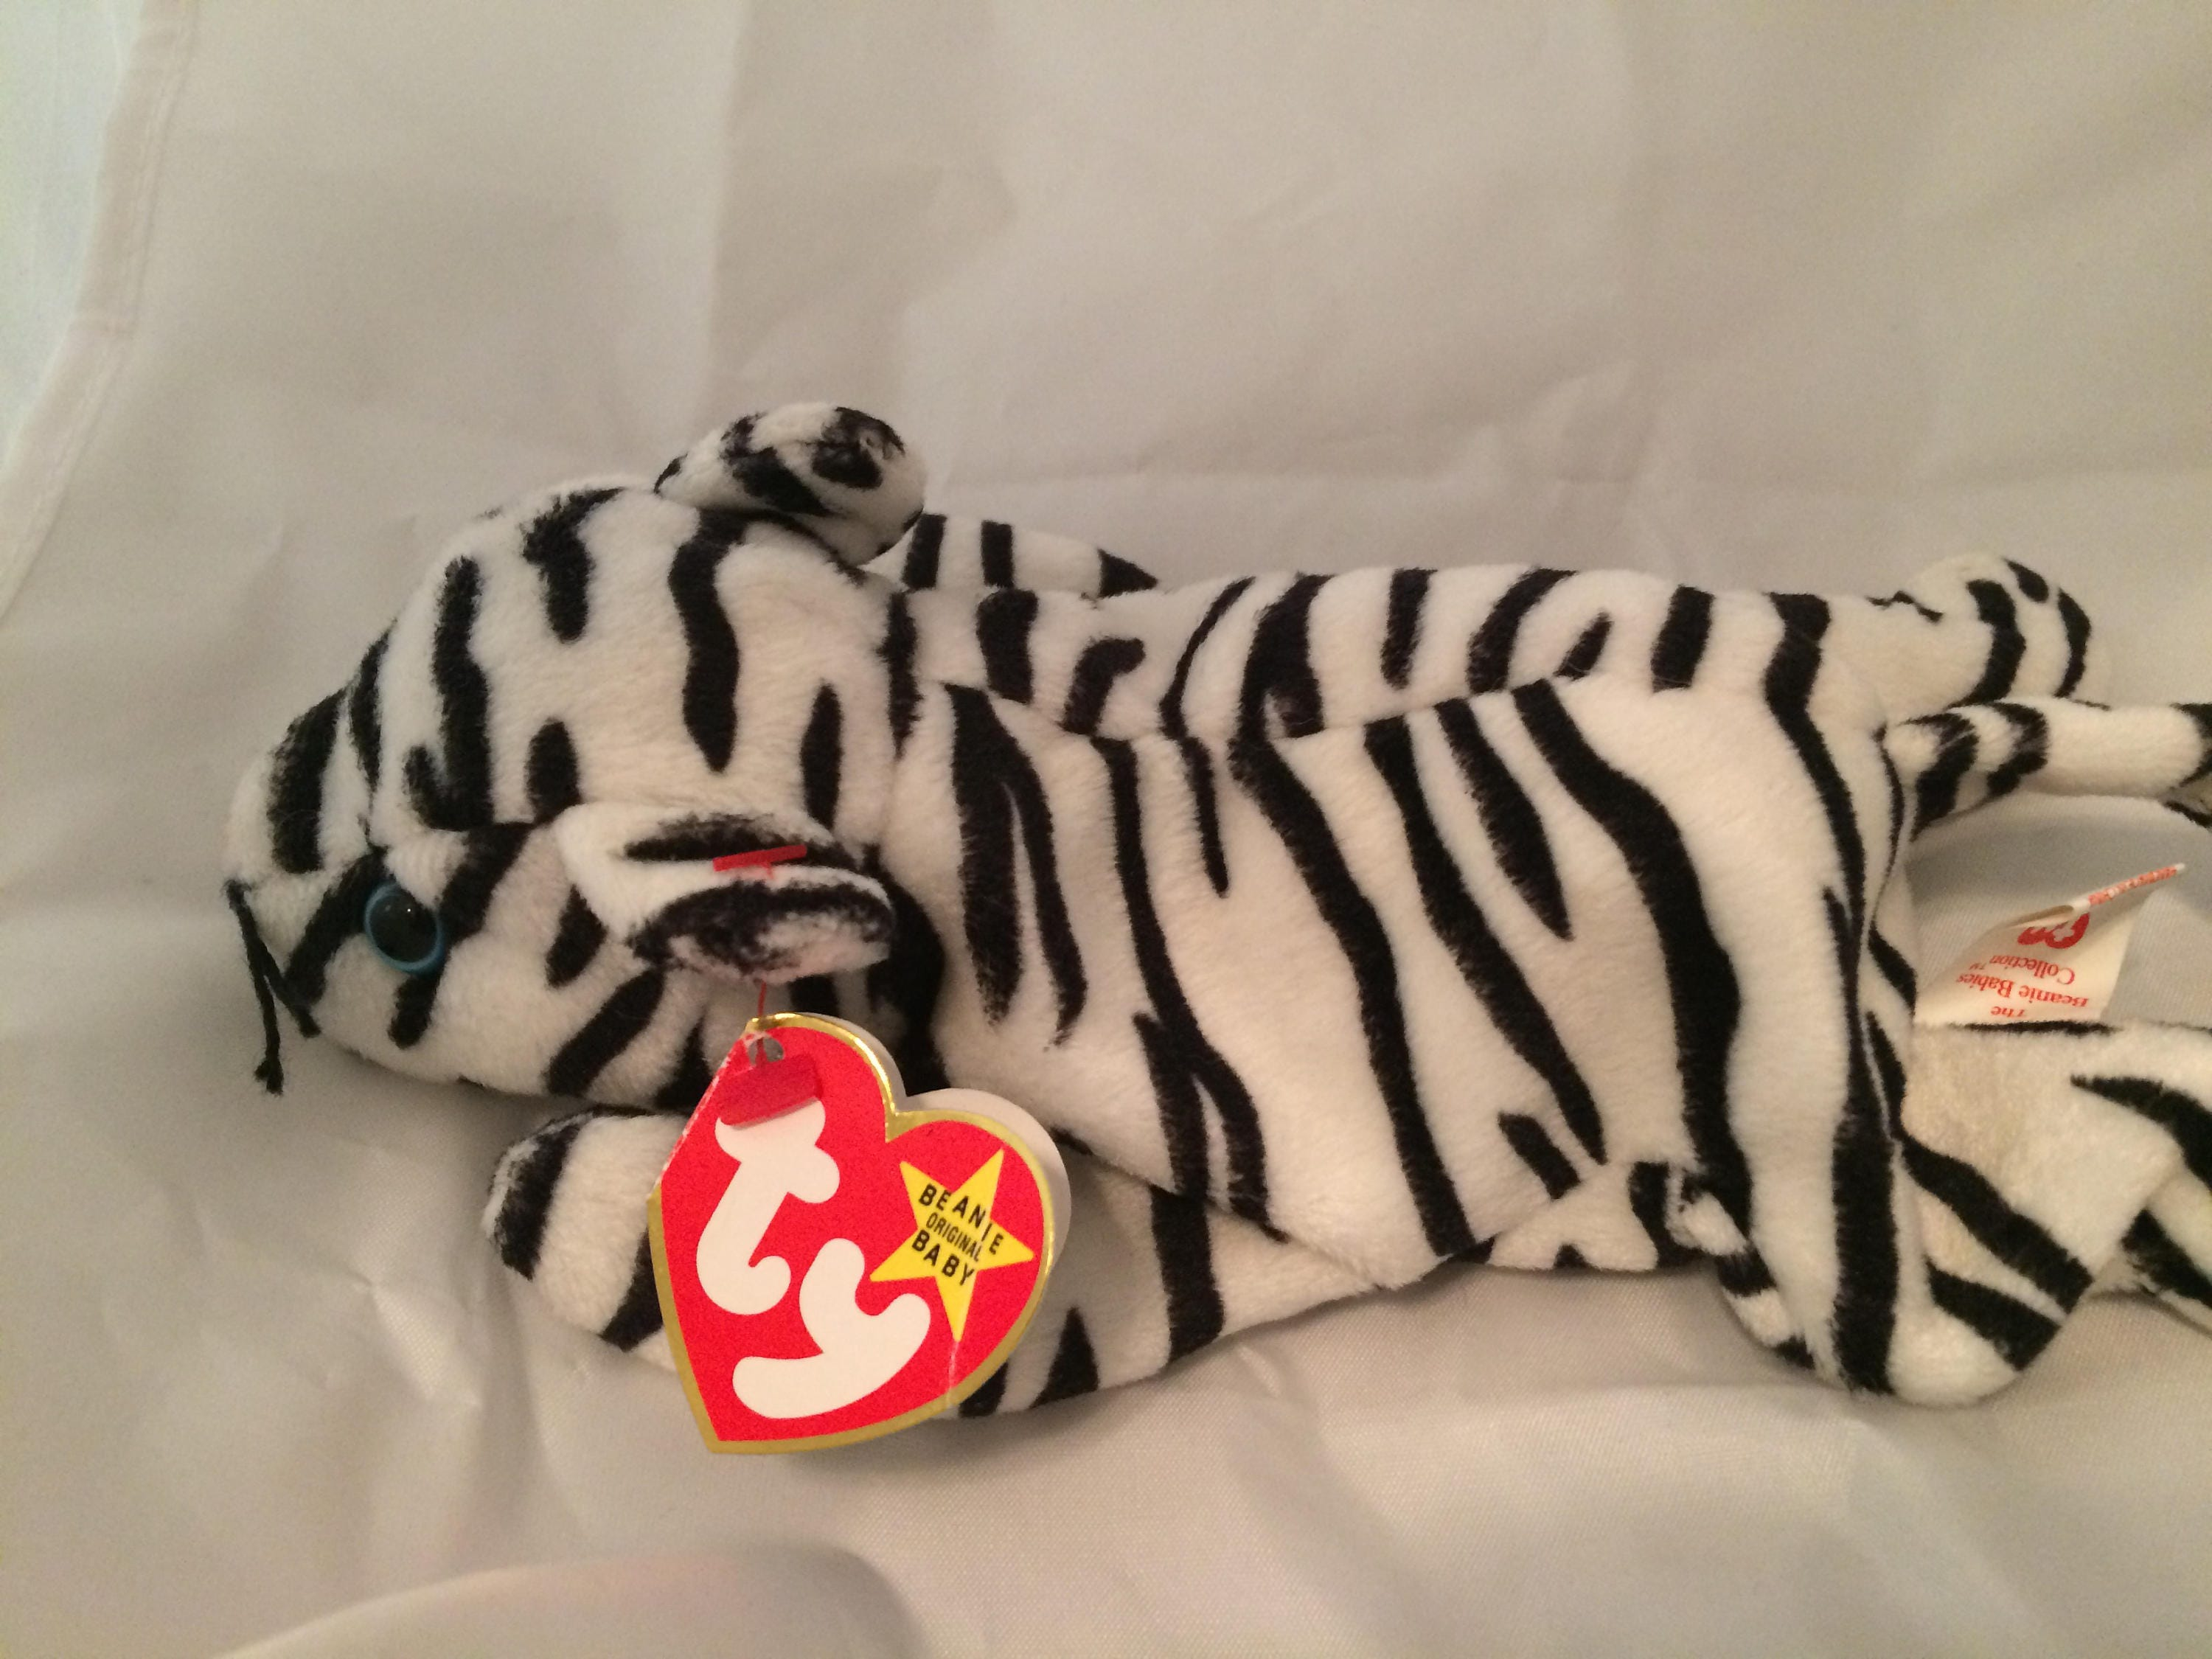 bd5bc8bd24a Ty Beanie Baby Blizzard the Tiger Fourth Generation MWT